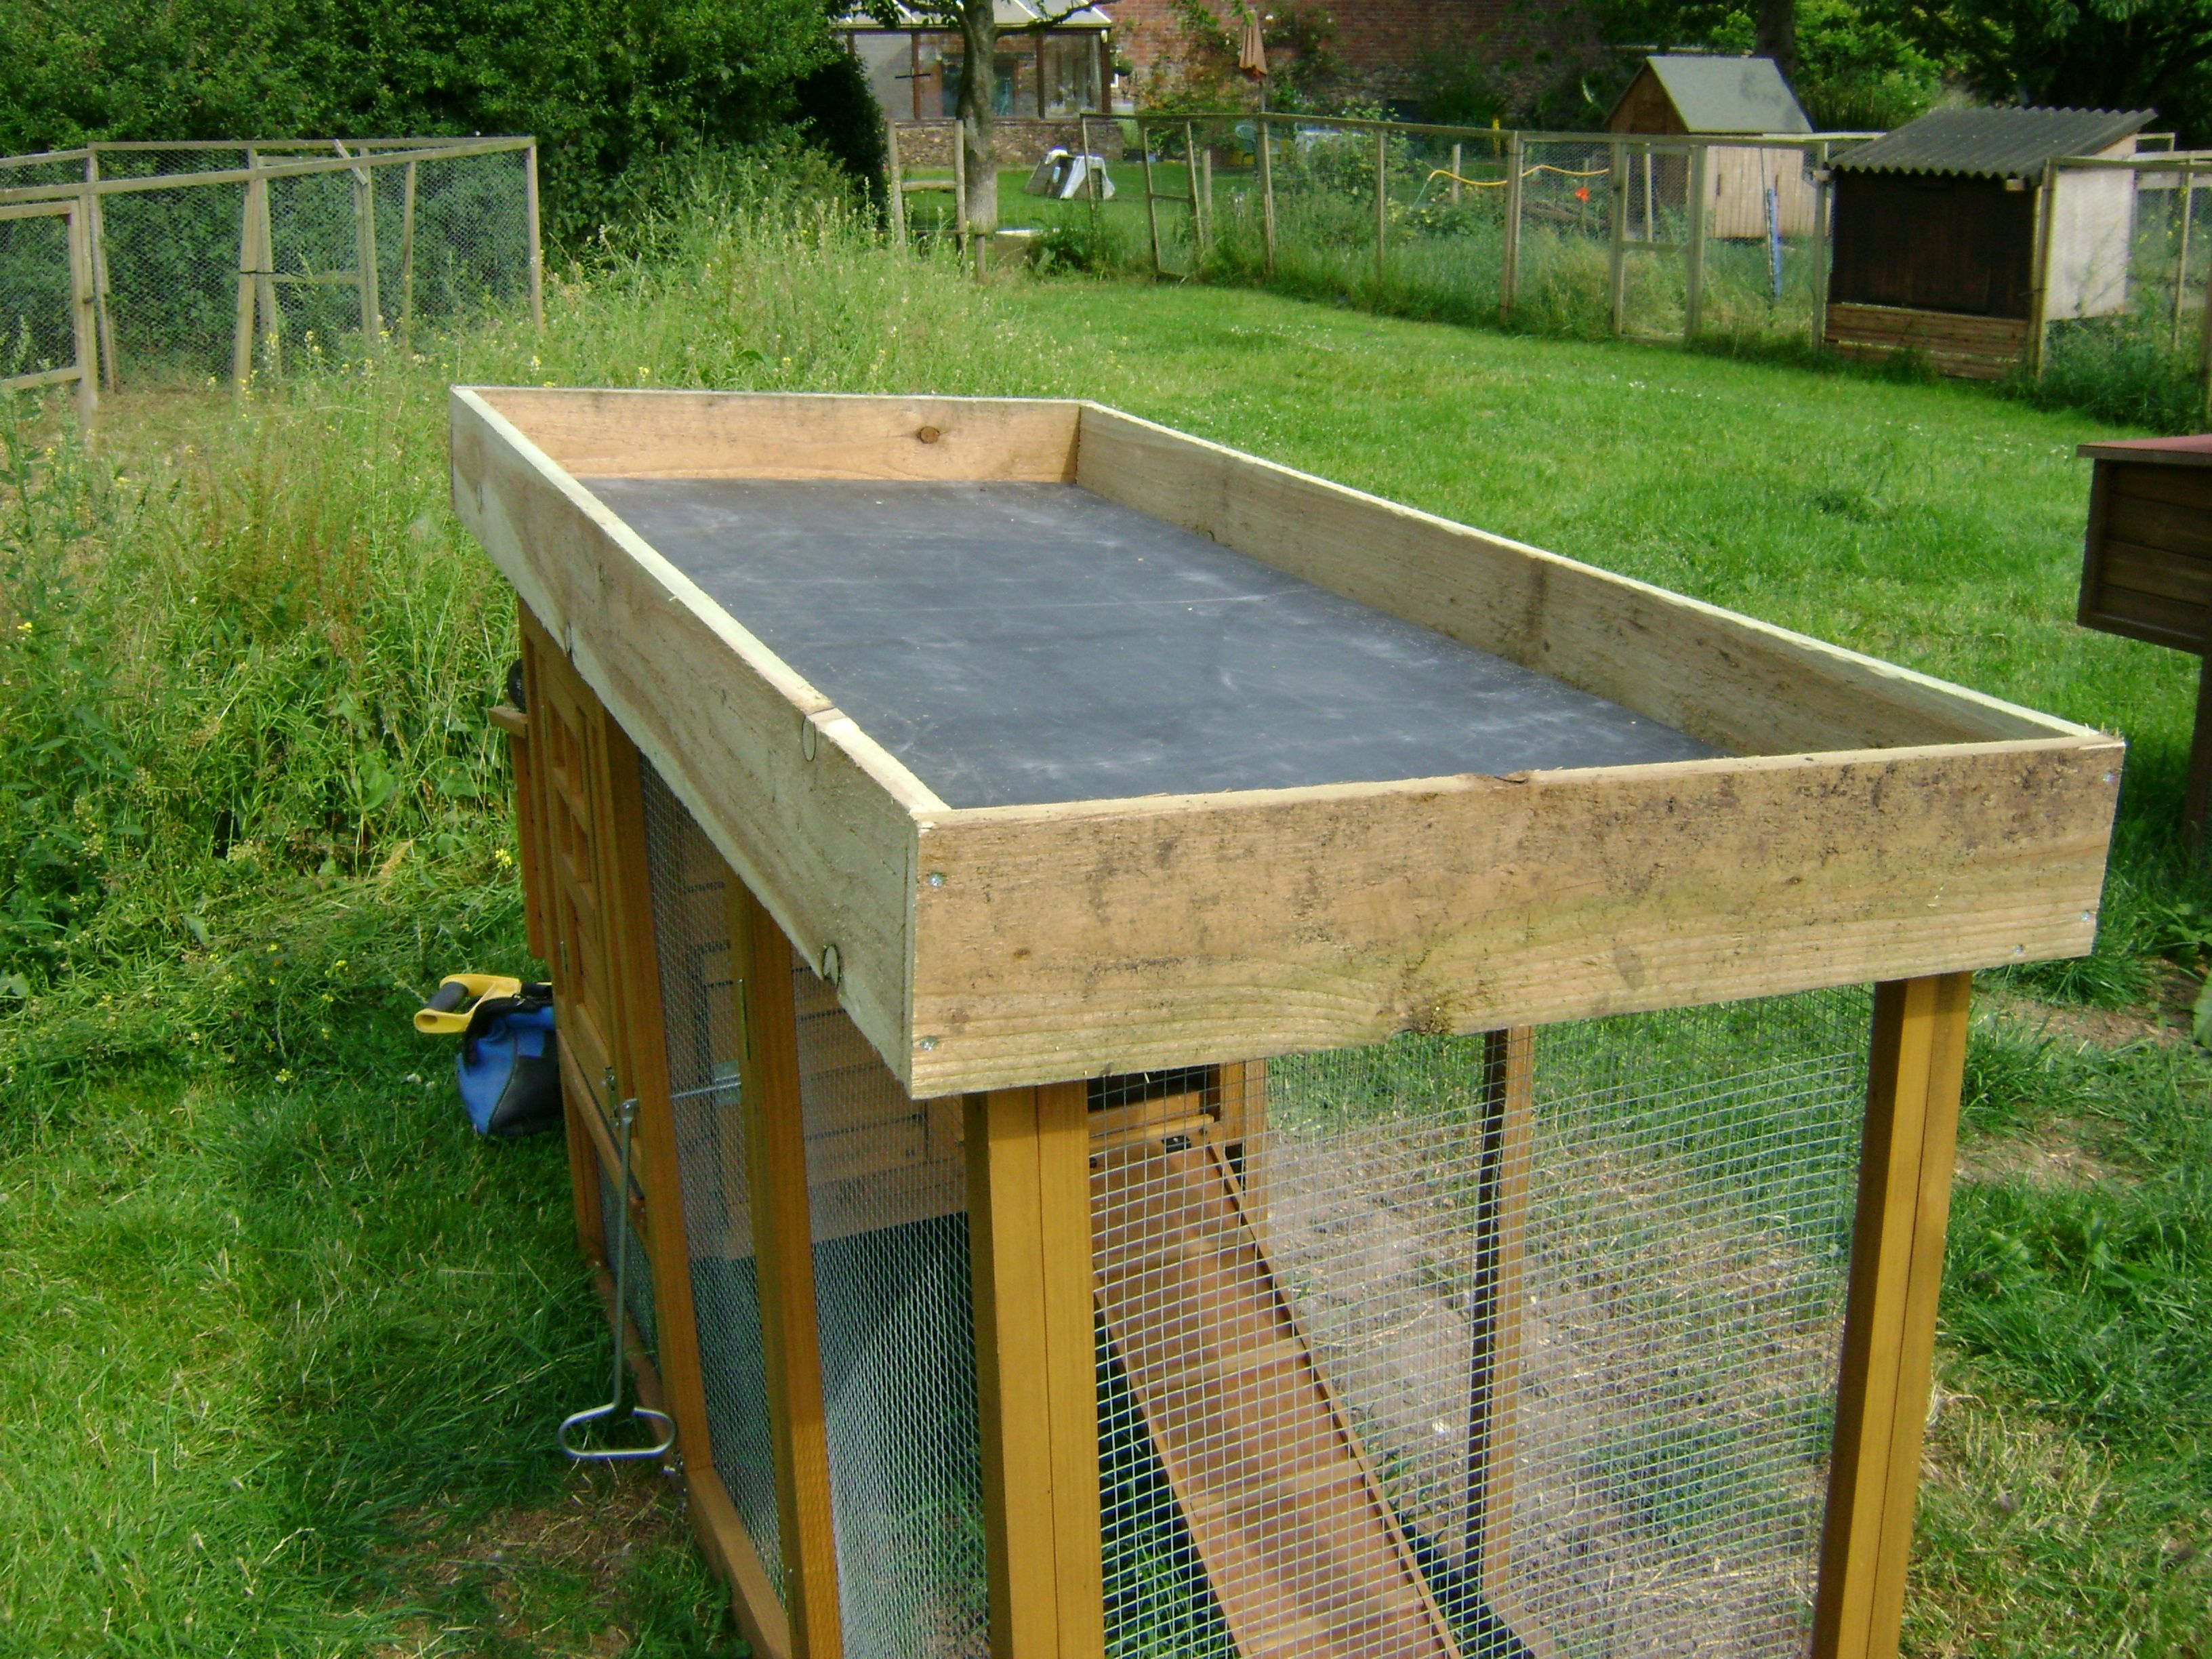 Green Roof For The Chicken Coop Green Roof Benefits